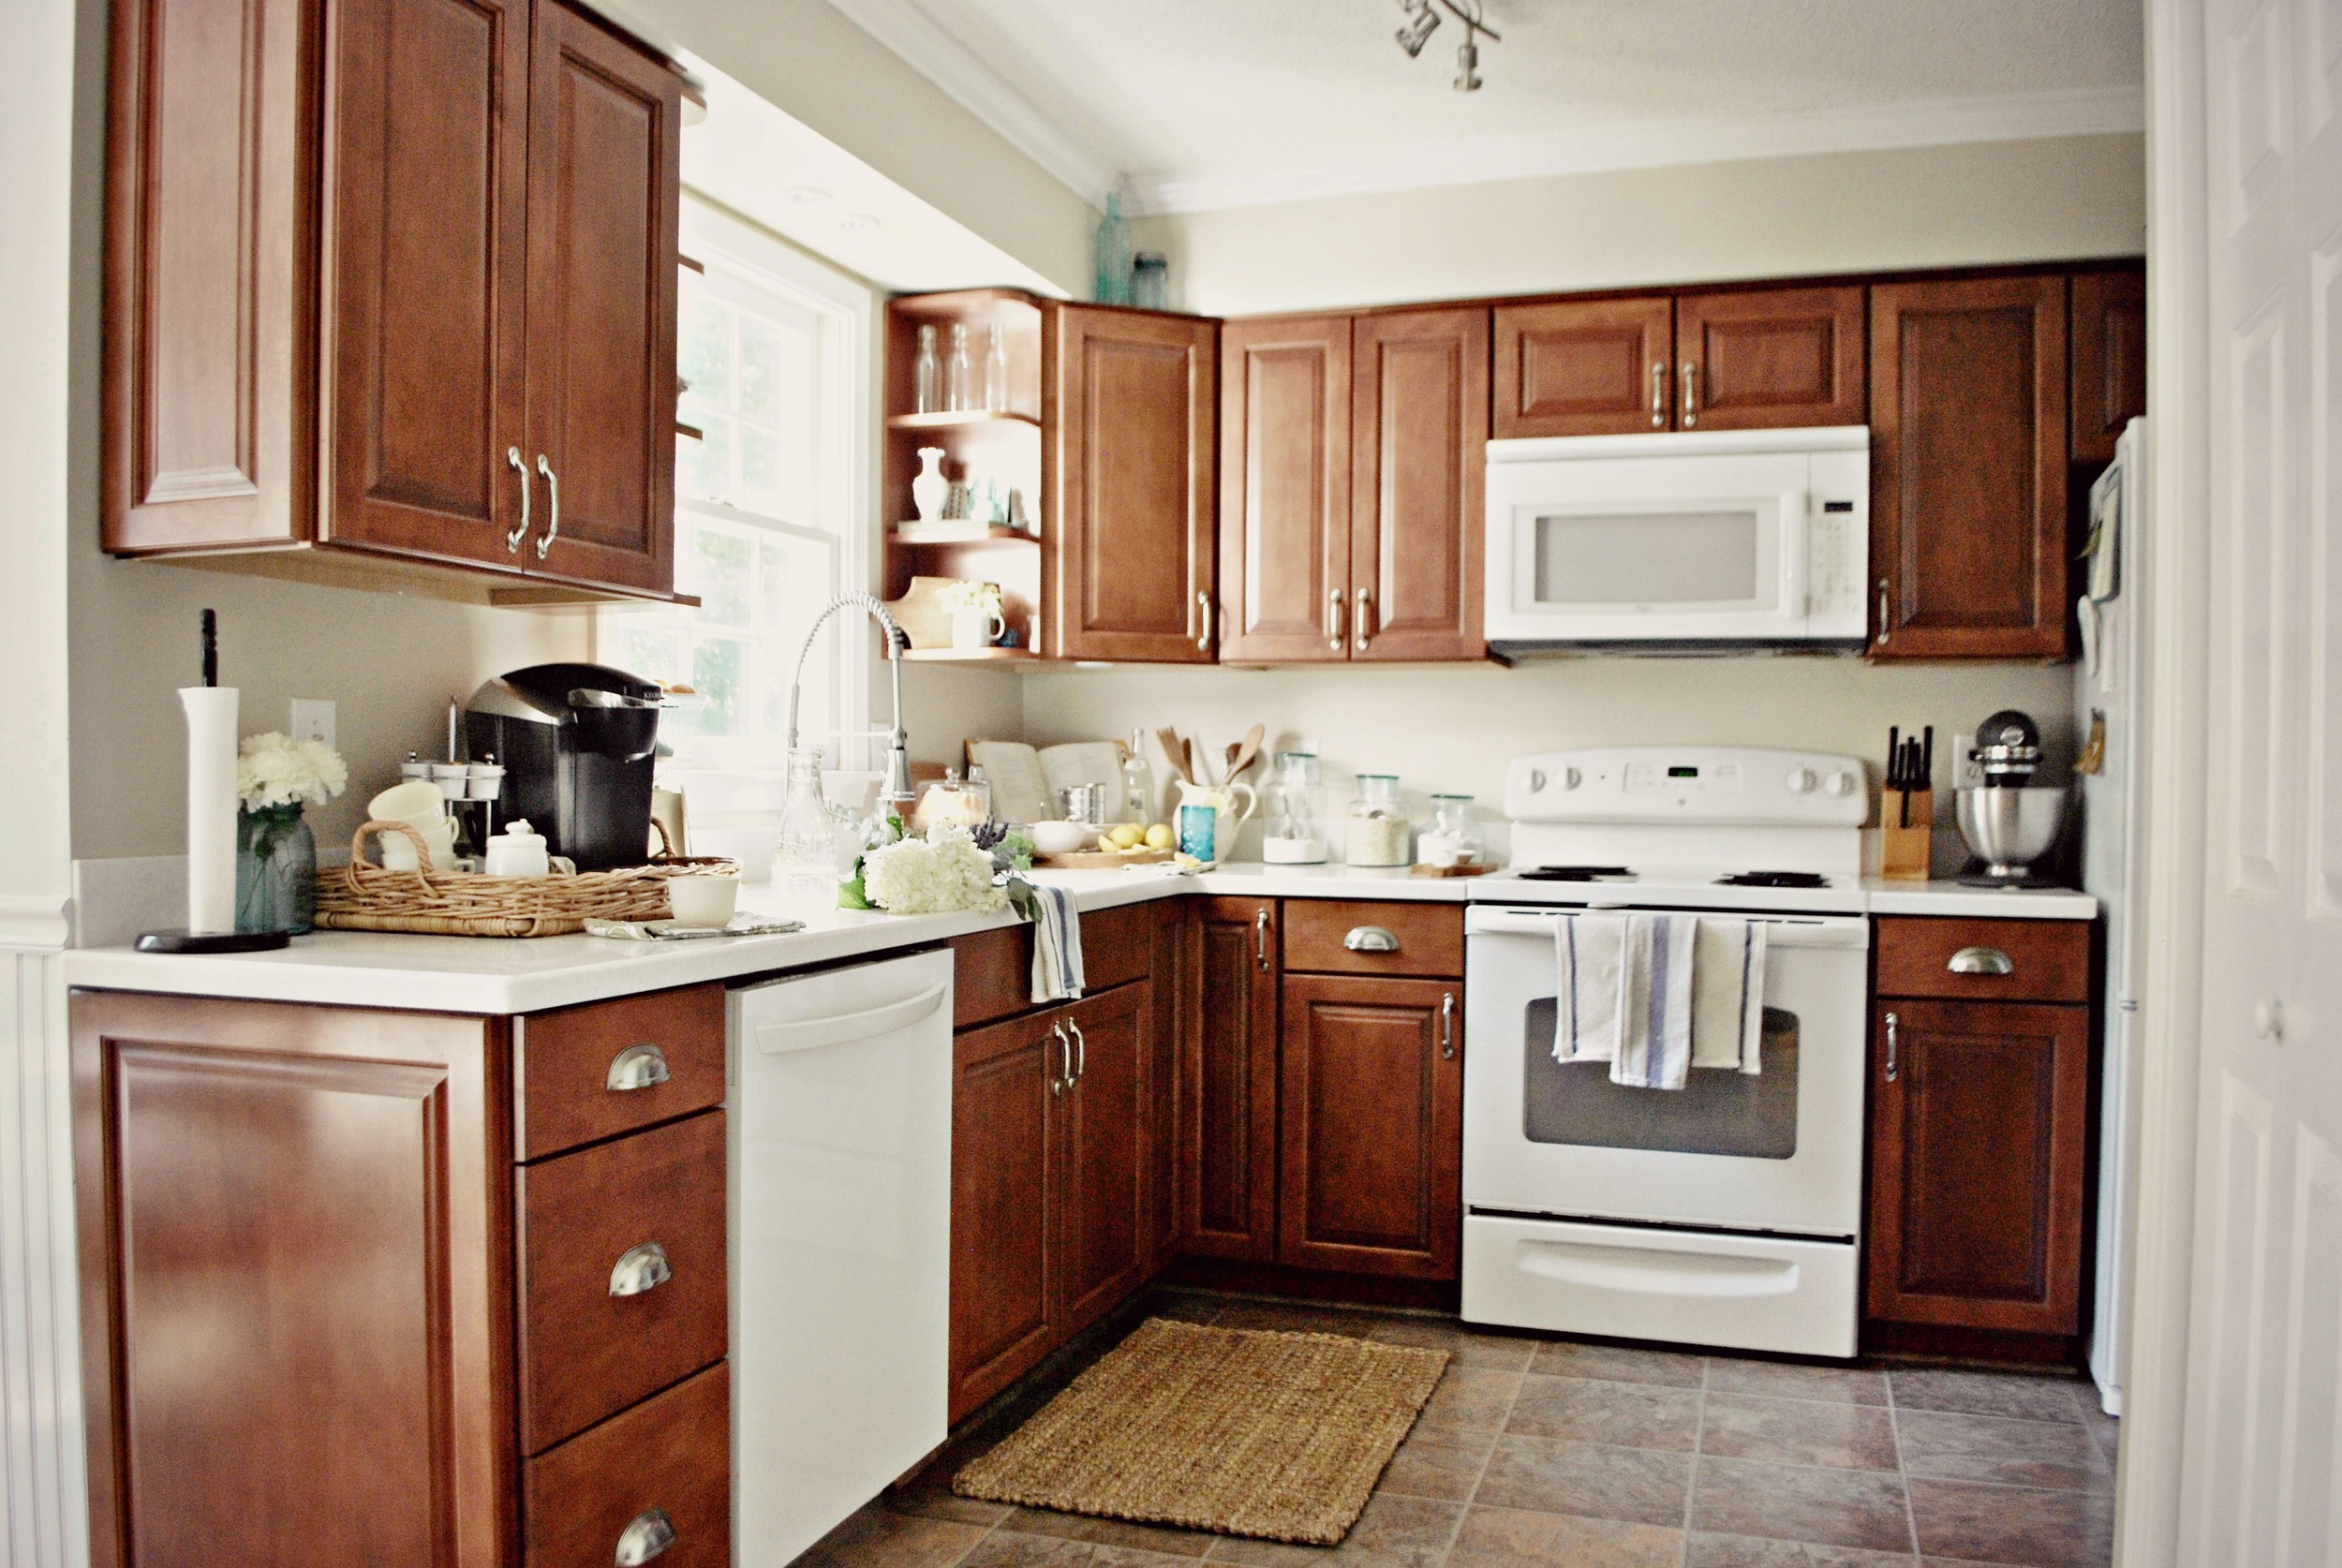 budget kitchen cabinets cost of plum pretty decor design co painted kitchendesign1 jpeg